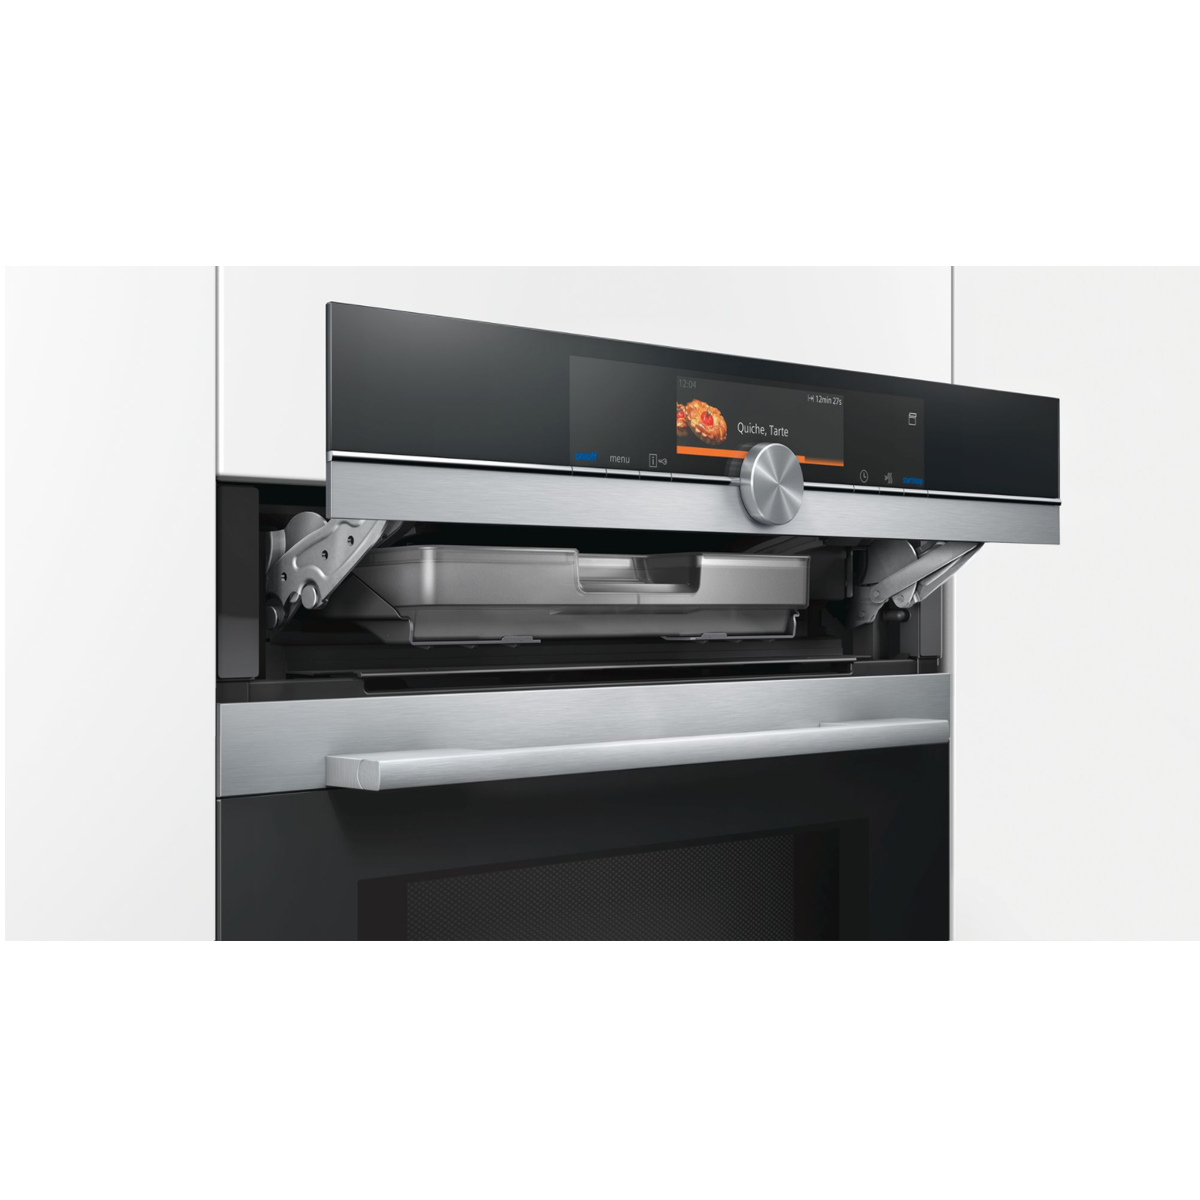 Siemens iQ700  CN678G4S1B Compact Oven With Microwave and PulseSteam 140349